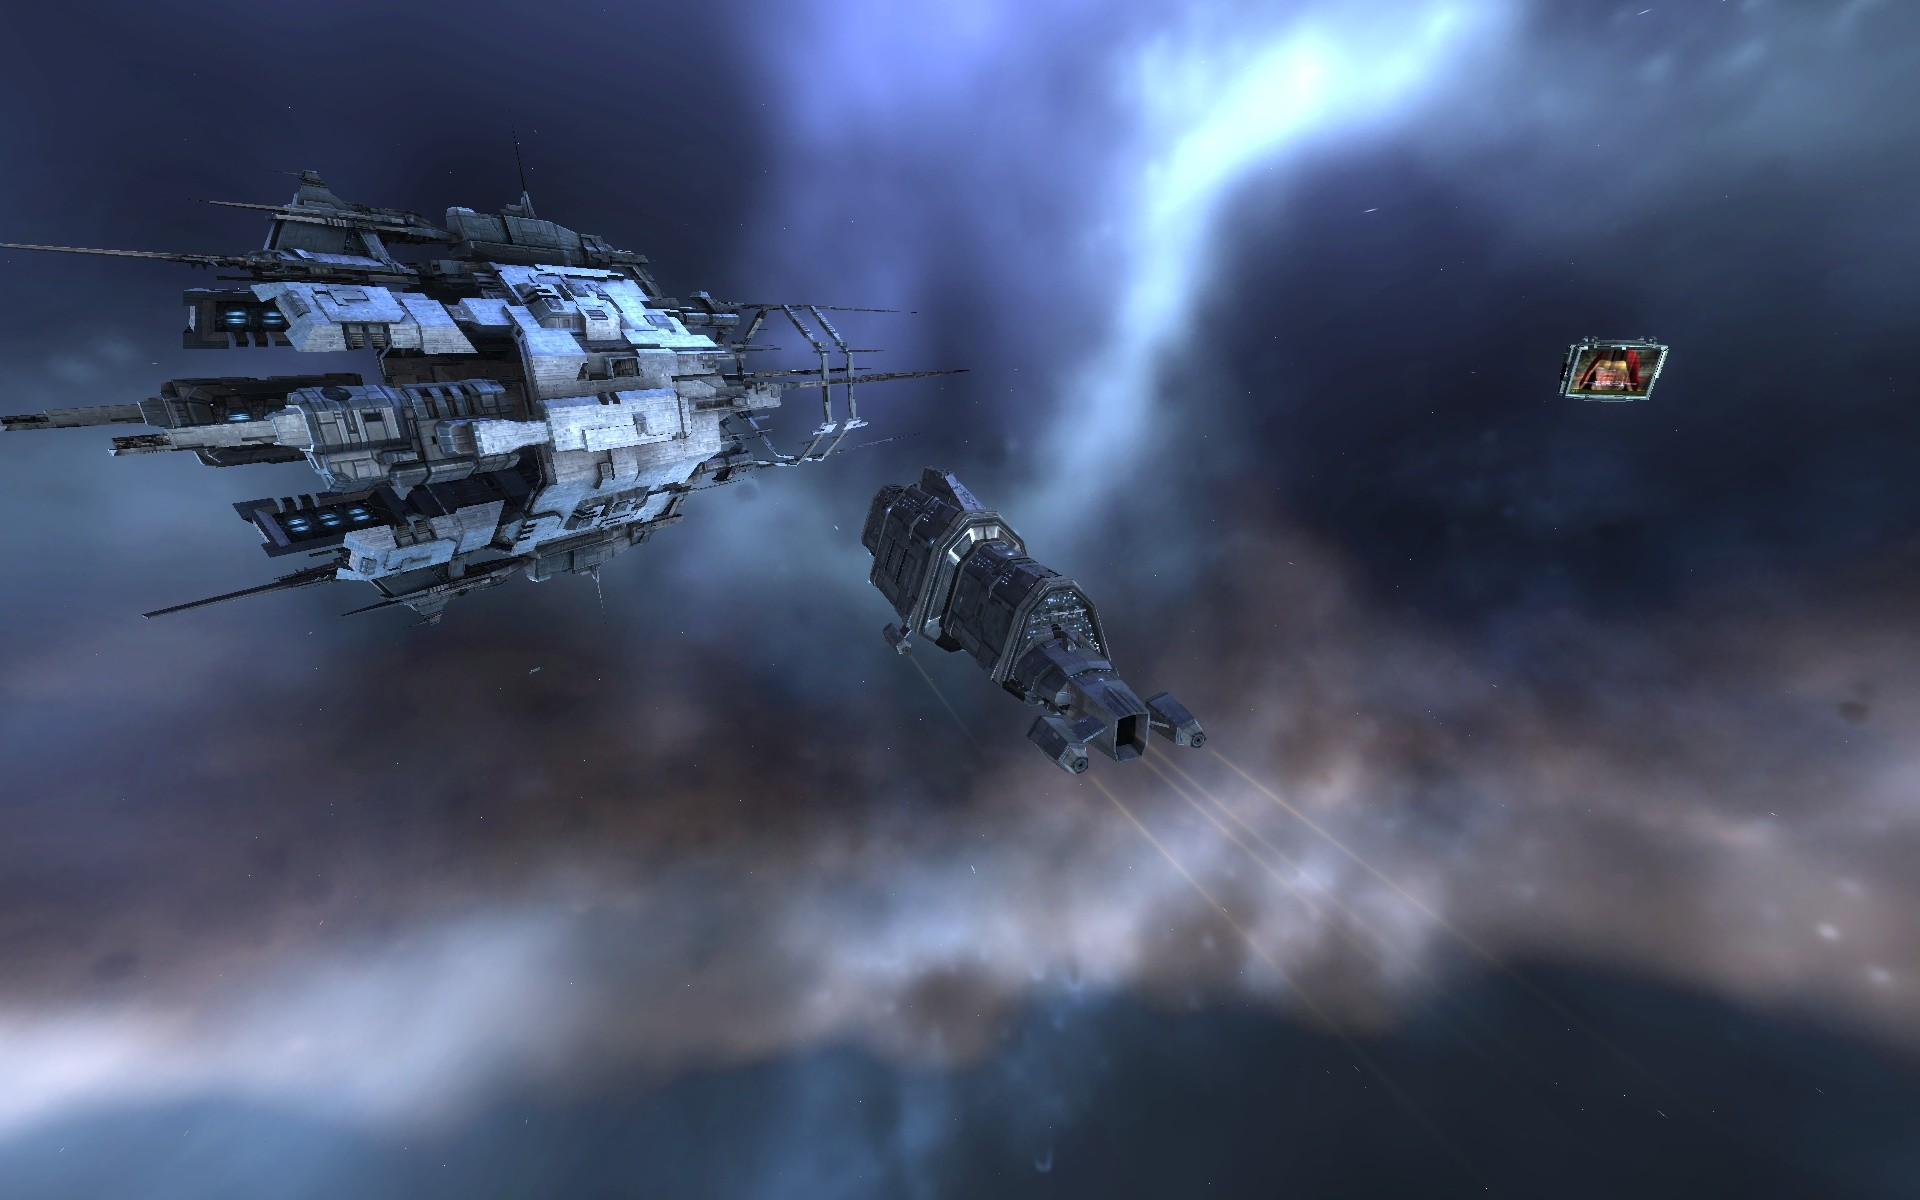 EVE Online - (New premium graphics) My Badger Mk2 heading through a Caldari Stargate